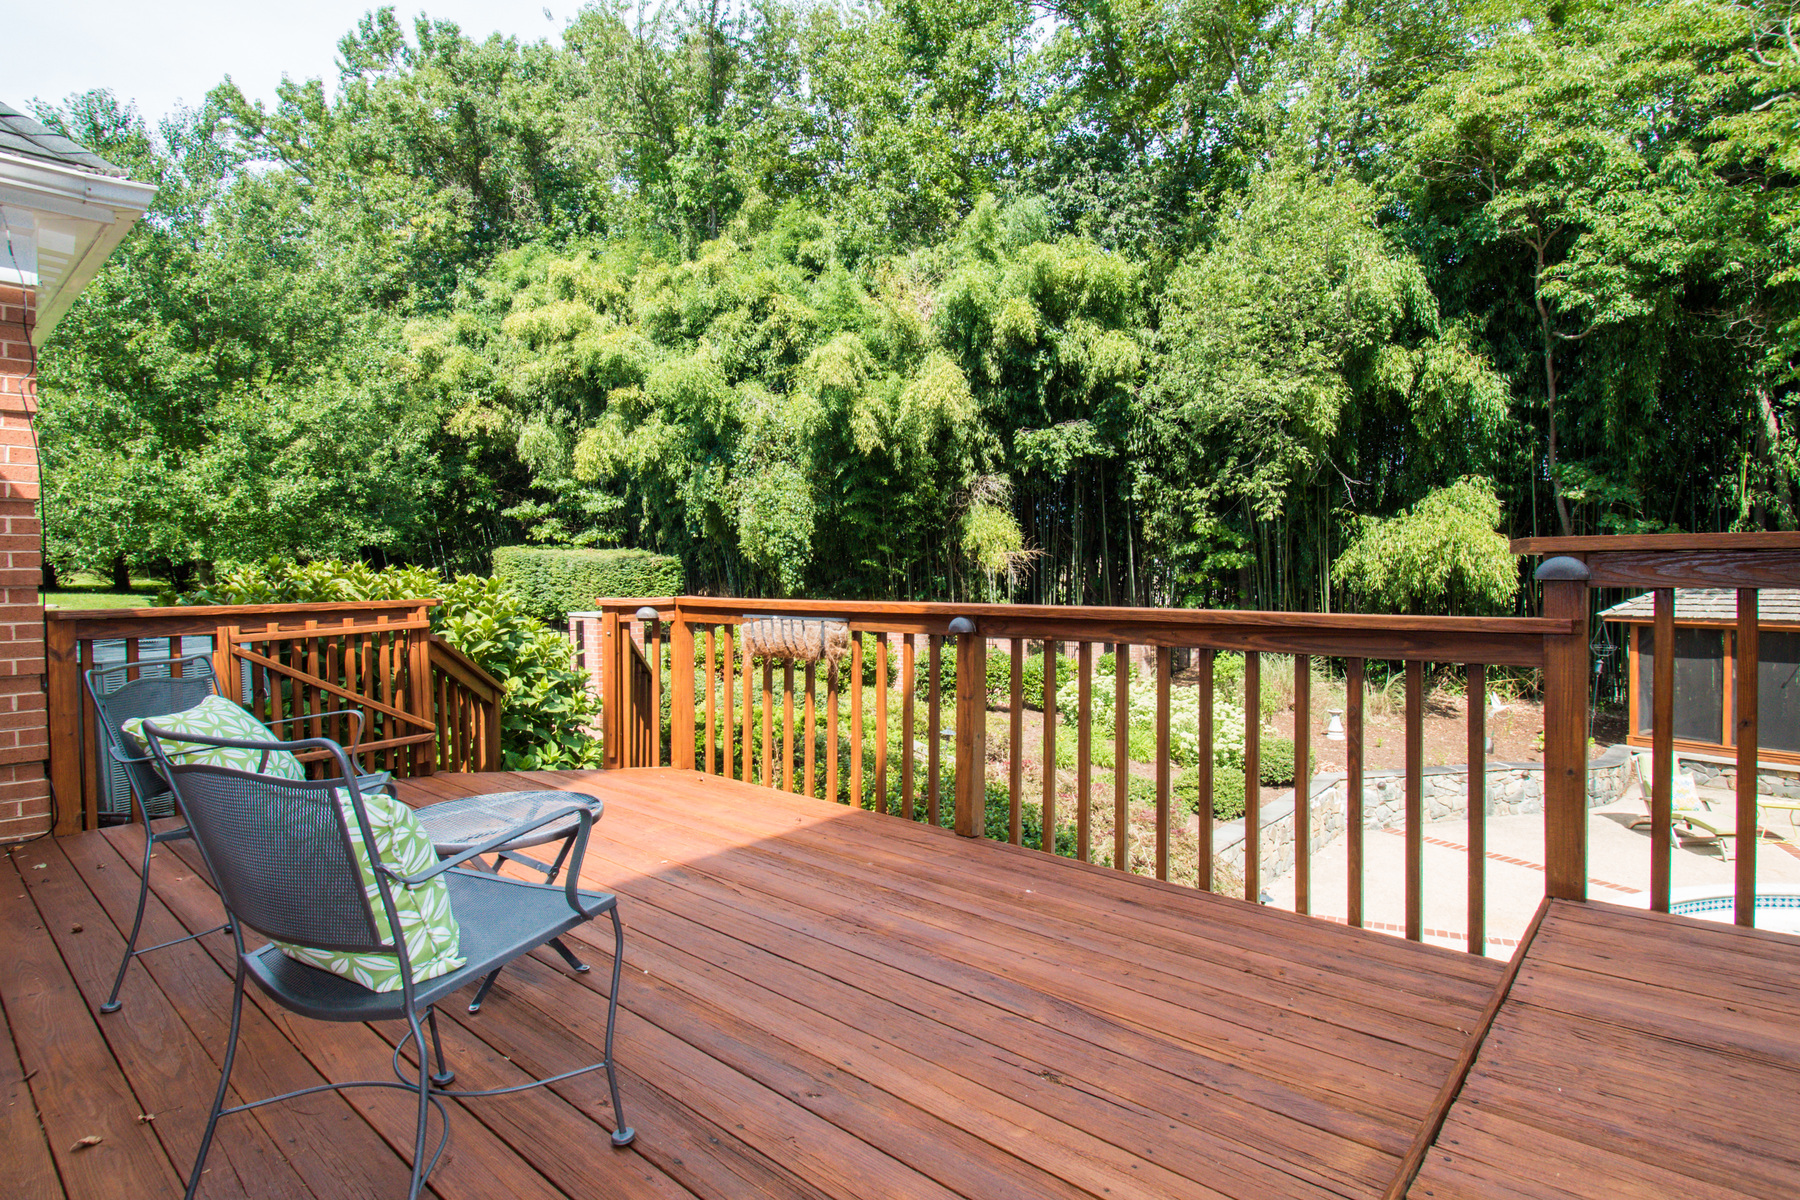 Additional photo for property listing at 576 Stocketts Run Road, Davidsonville 576 Stocketts Run Rd Davidsonville, Maryland 21035 États-Unis